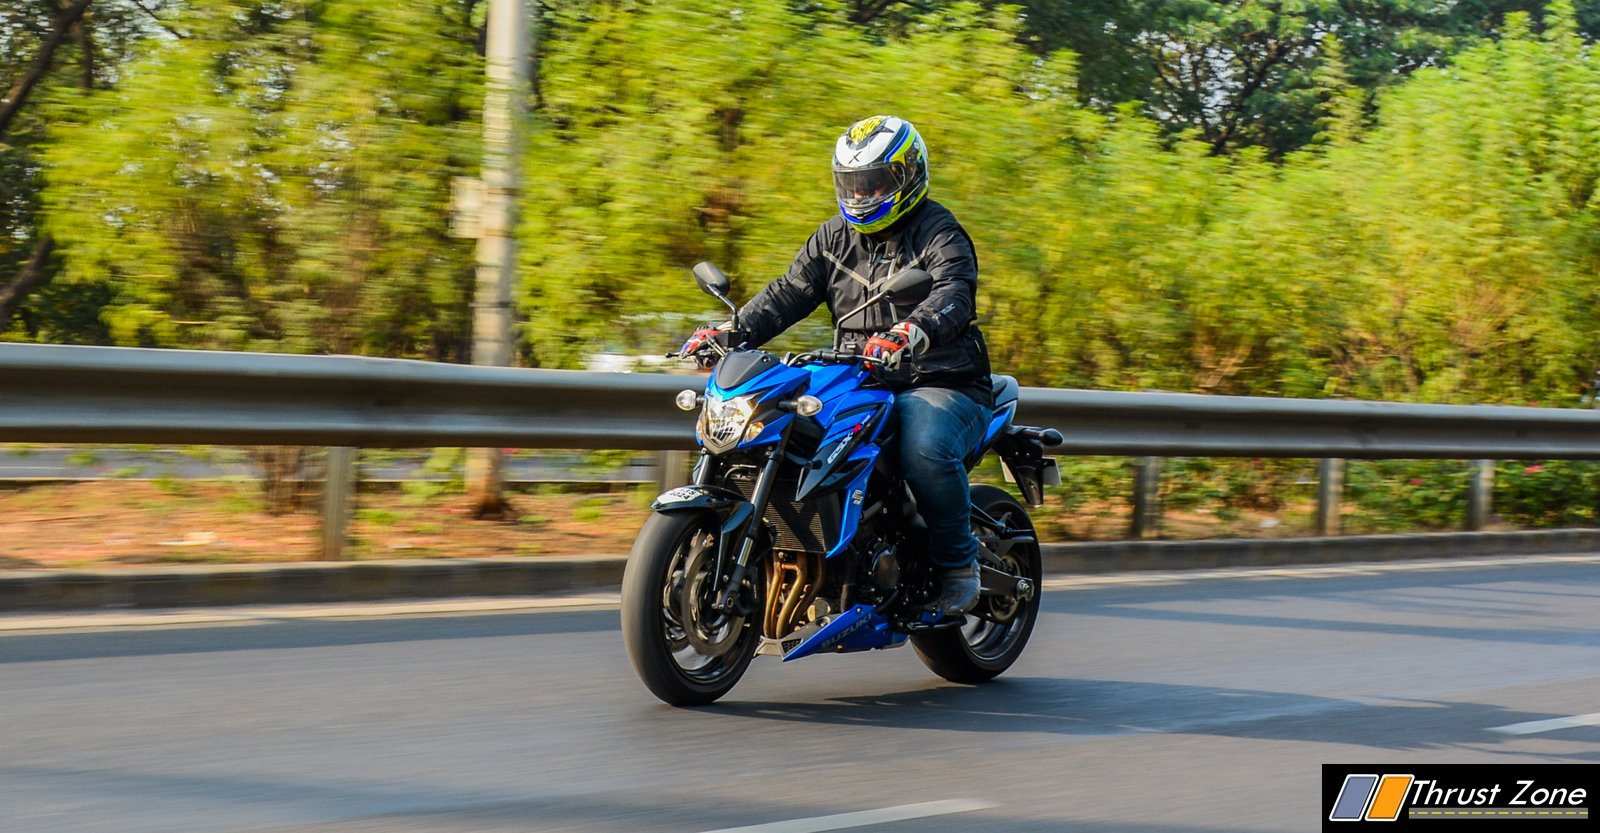 2018-Suzuki-GSX-750-INDIA-Review-1